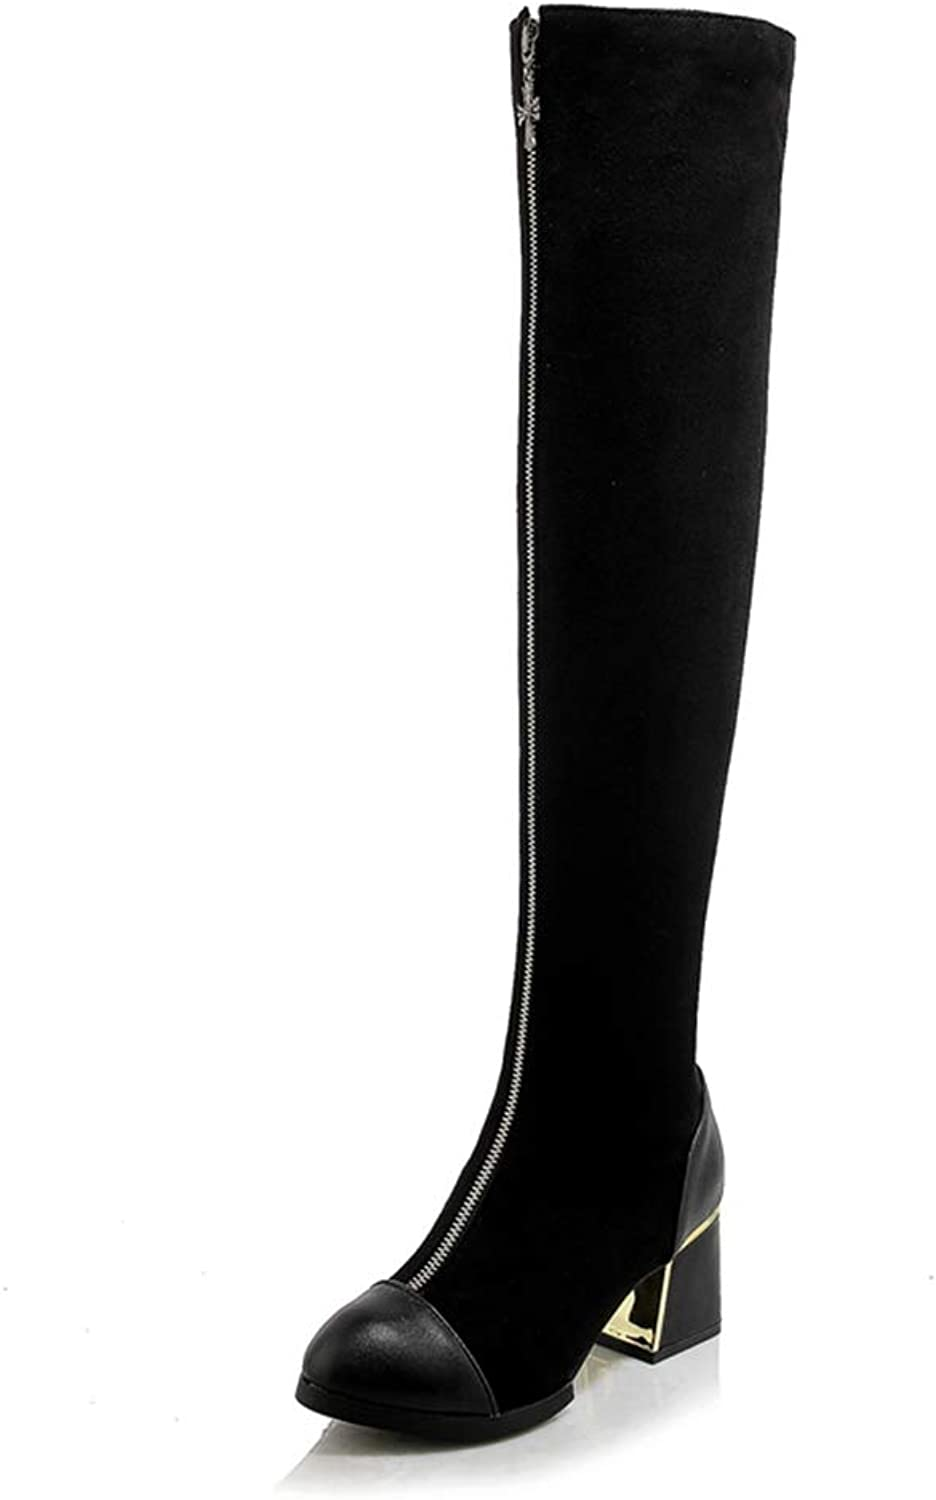 T-JULY Women Round Toe Knee-high Boots Lady Winter Casual Motorcycle Zipper Martin High Heel Boots